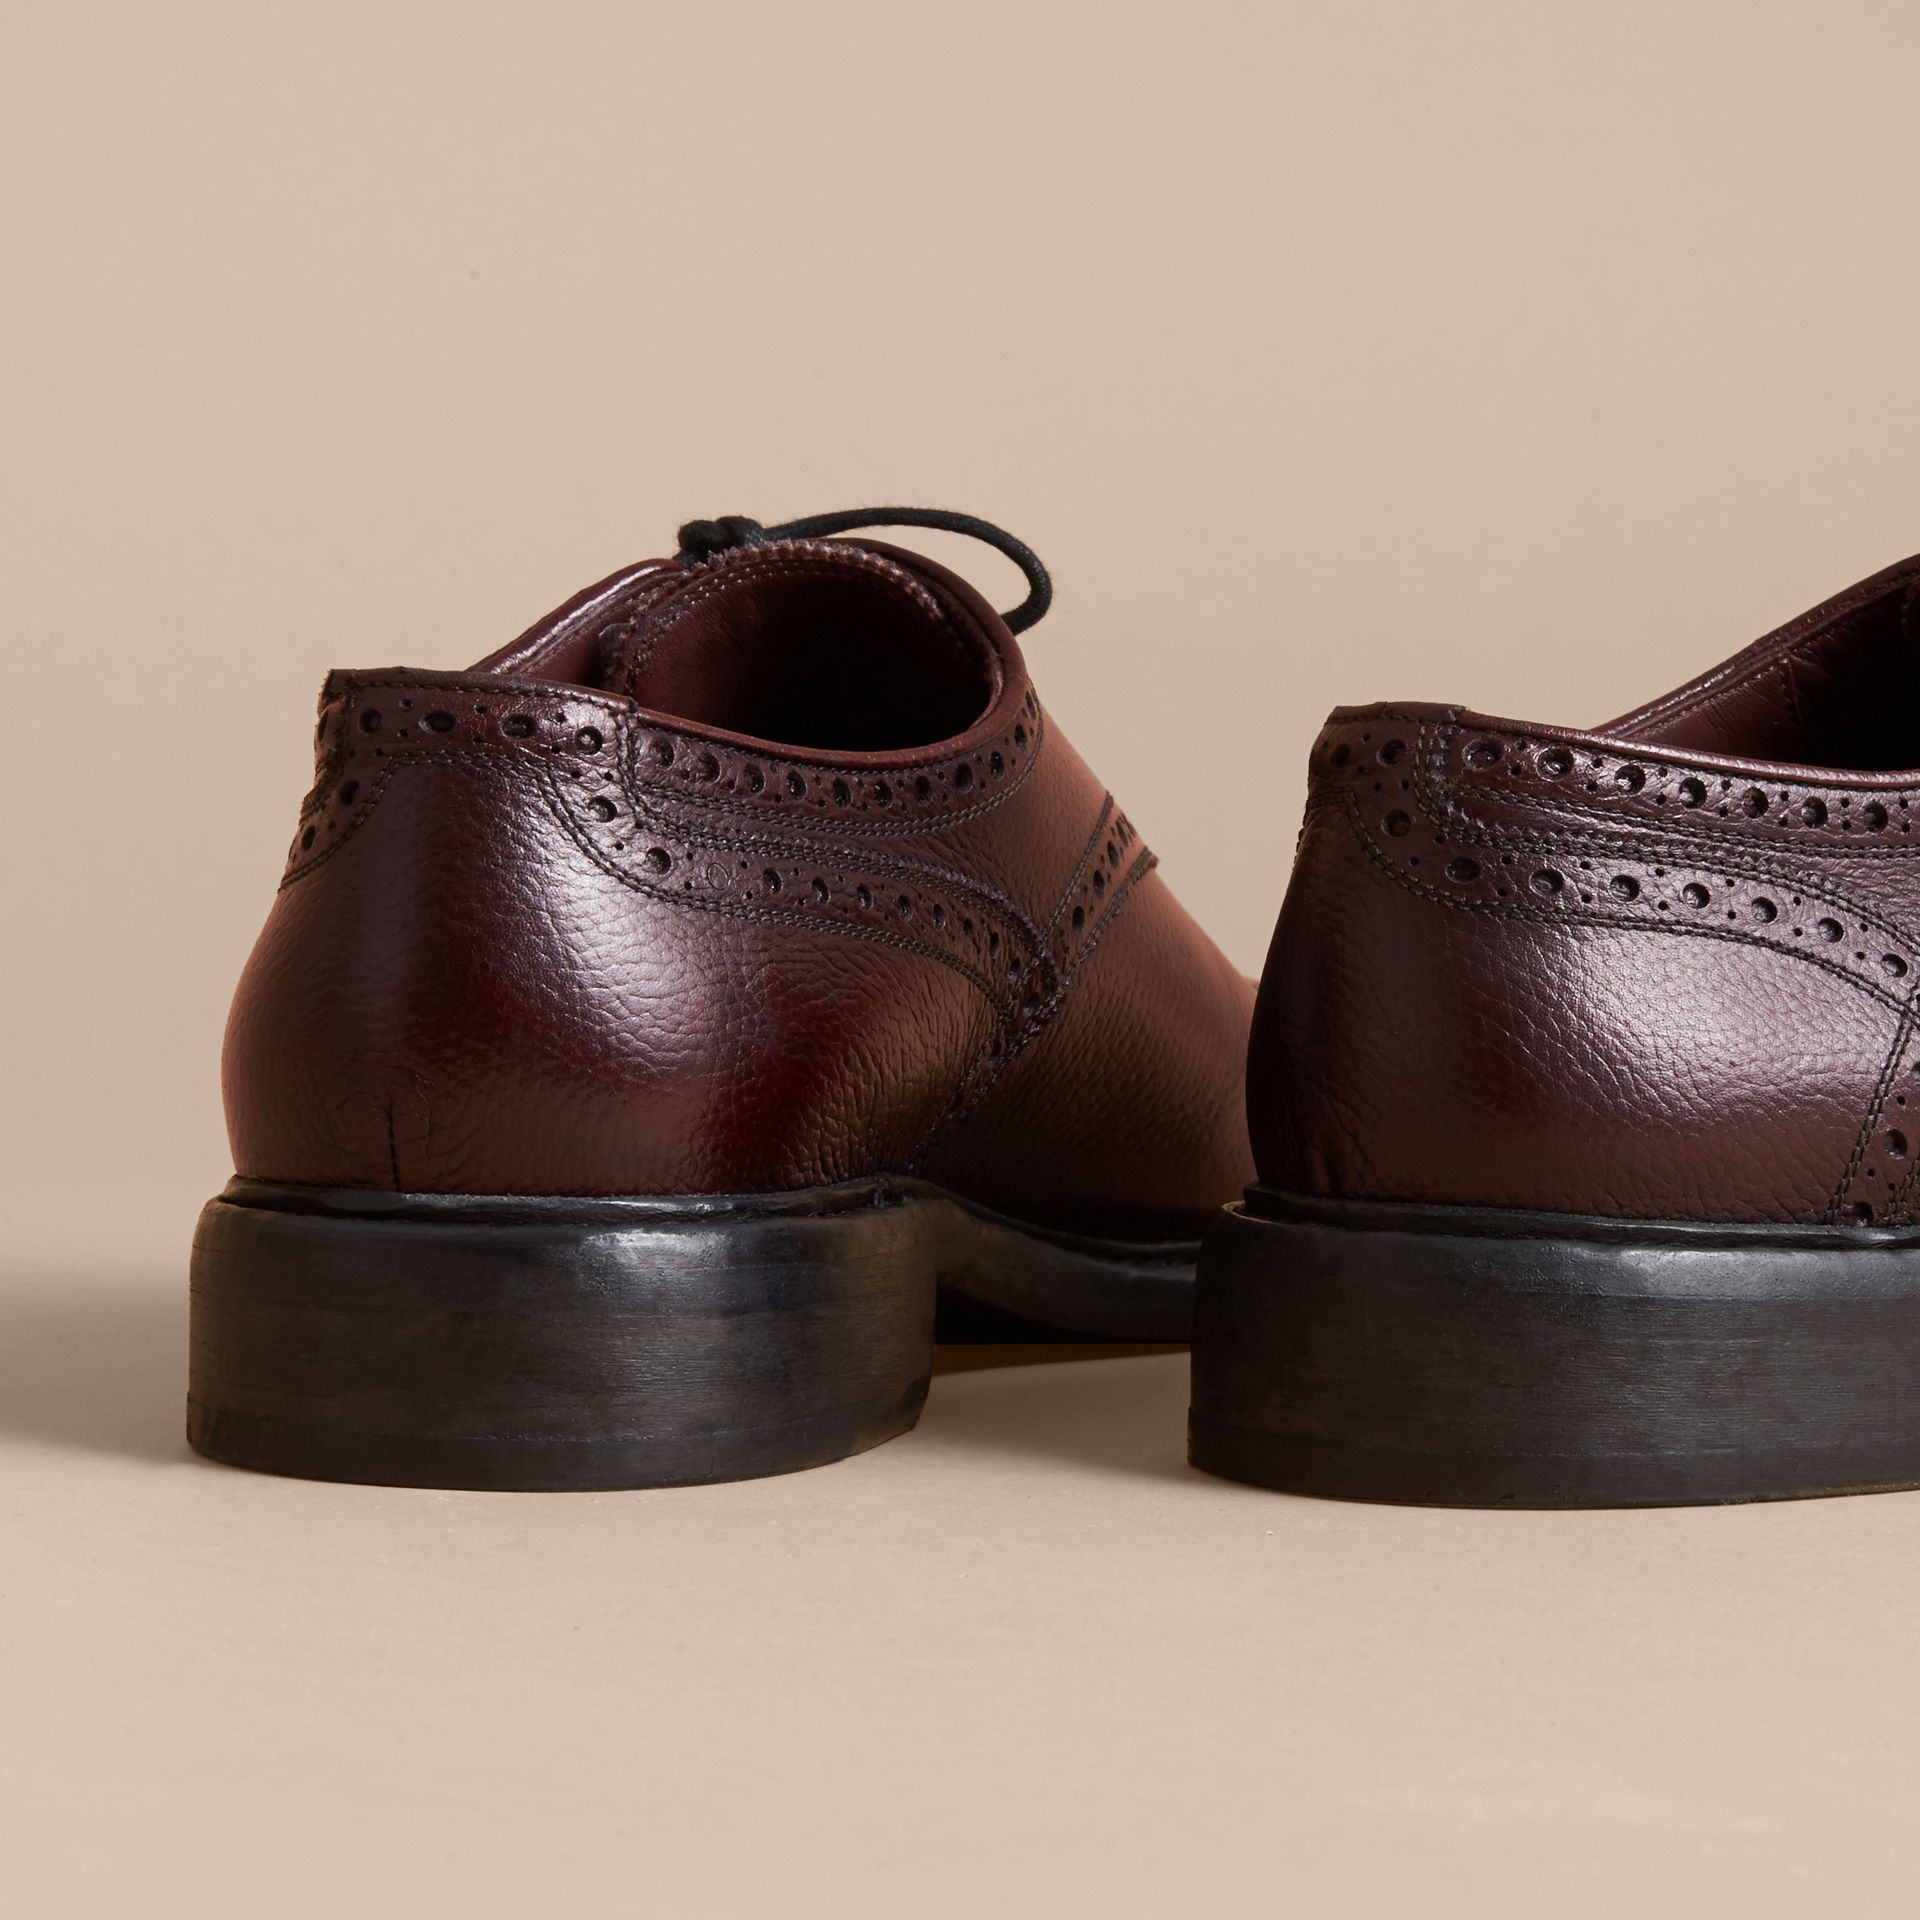 Leather Brogues with Asymmetric Closure in Burgundy - Men | Burberry - gallery image 5